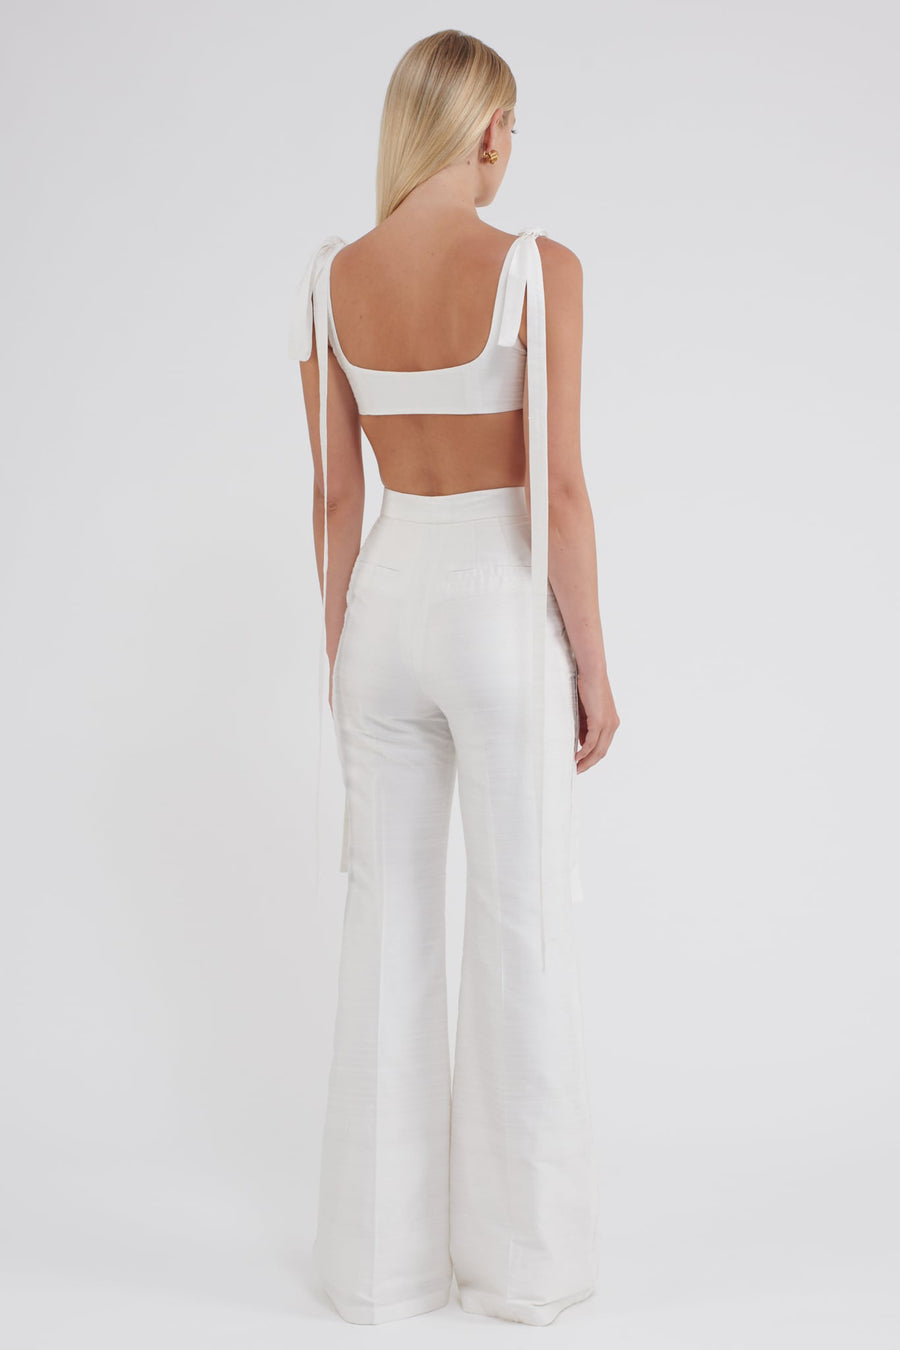 THE GRACE PANT in cream dupion silk